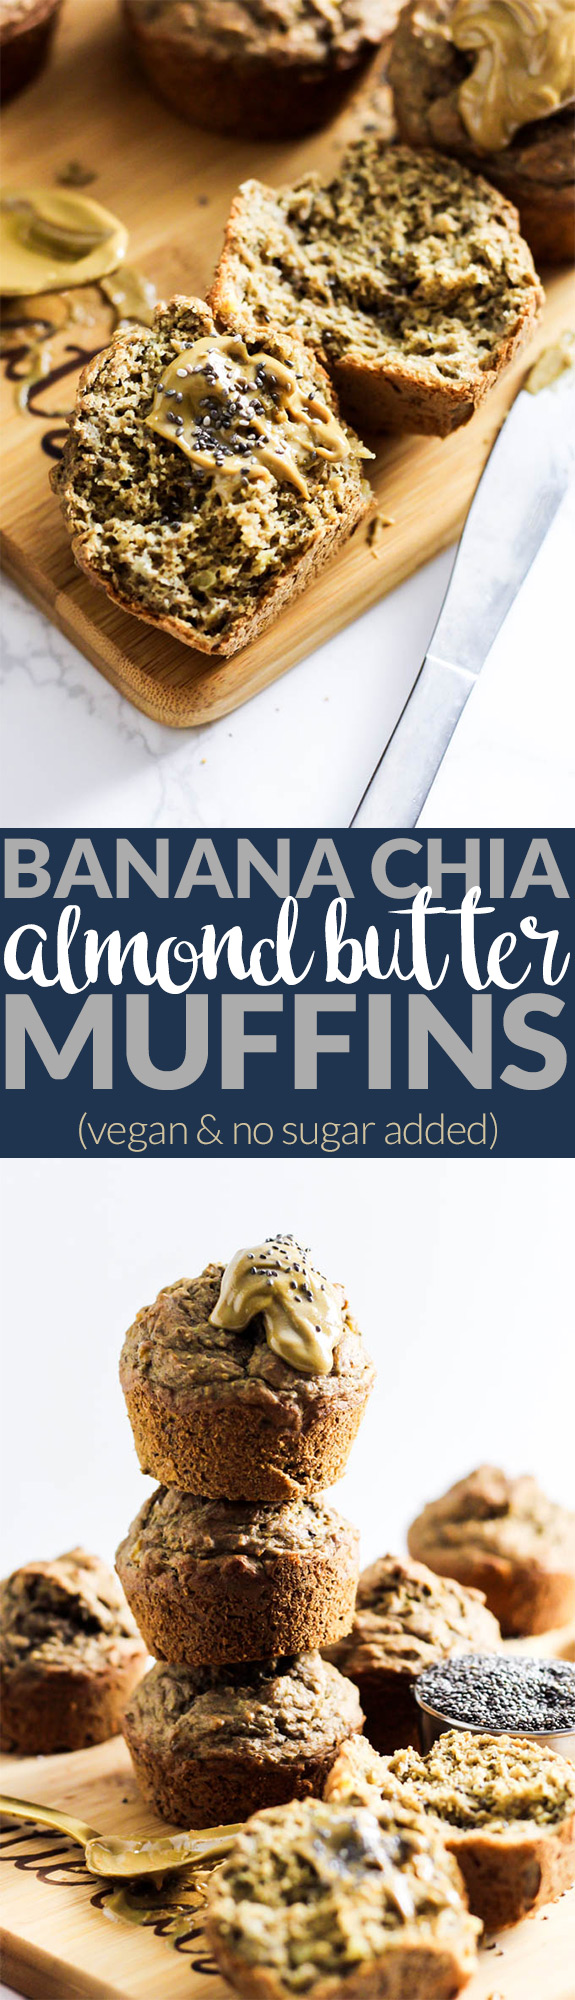 Enjoy these fluffy Banana Chia Almond Butter Muffins as a healthy breakfast or snack on-the-go! They're naturally sweetened, vegan & oil-free.